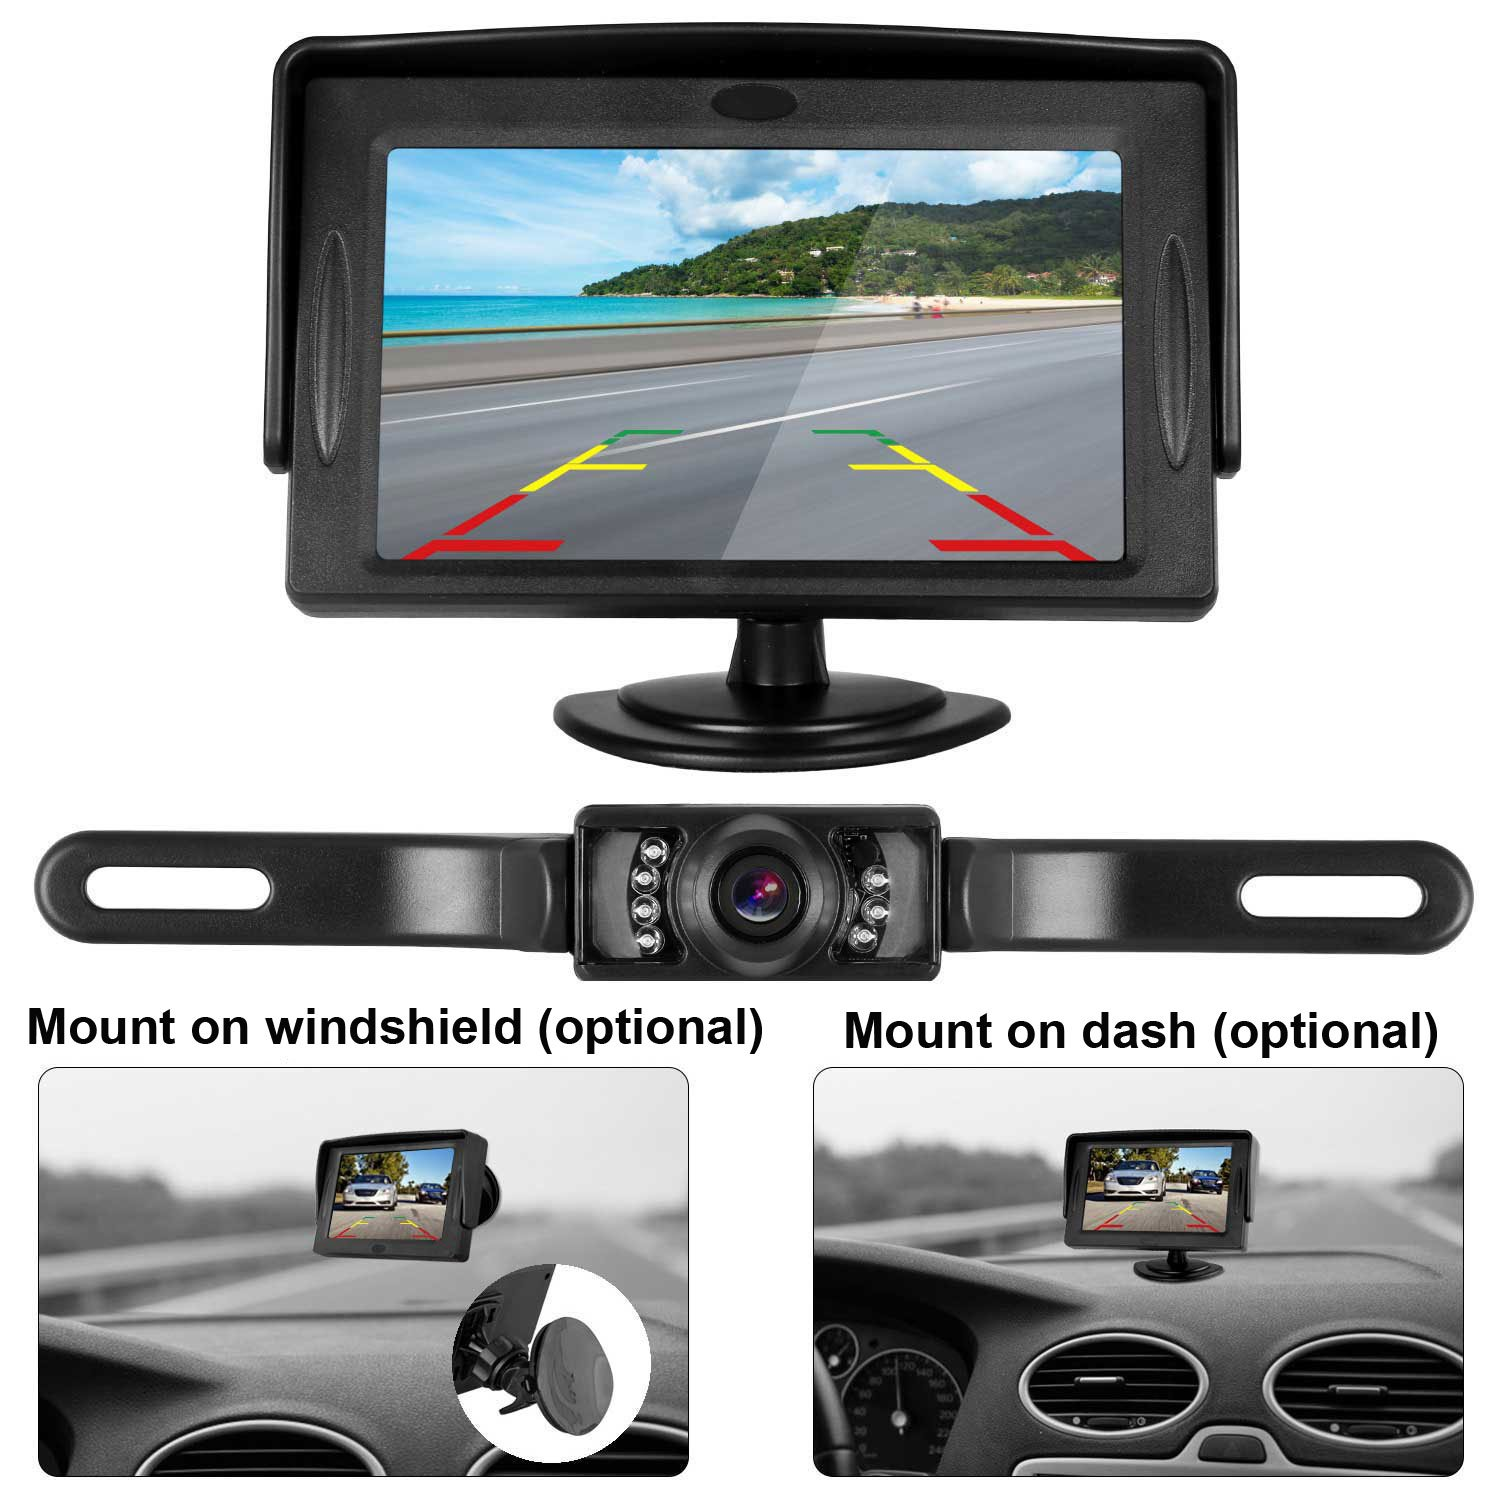 iStrong Backup Camera and Monitor Kit 4.3 Display Waterproof Camera only need single power Rear view or Fulltime View Optional For Car Vehicle 7 LED IR Night vision with Guide Lines